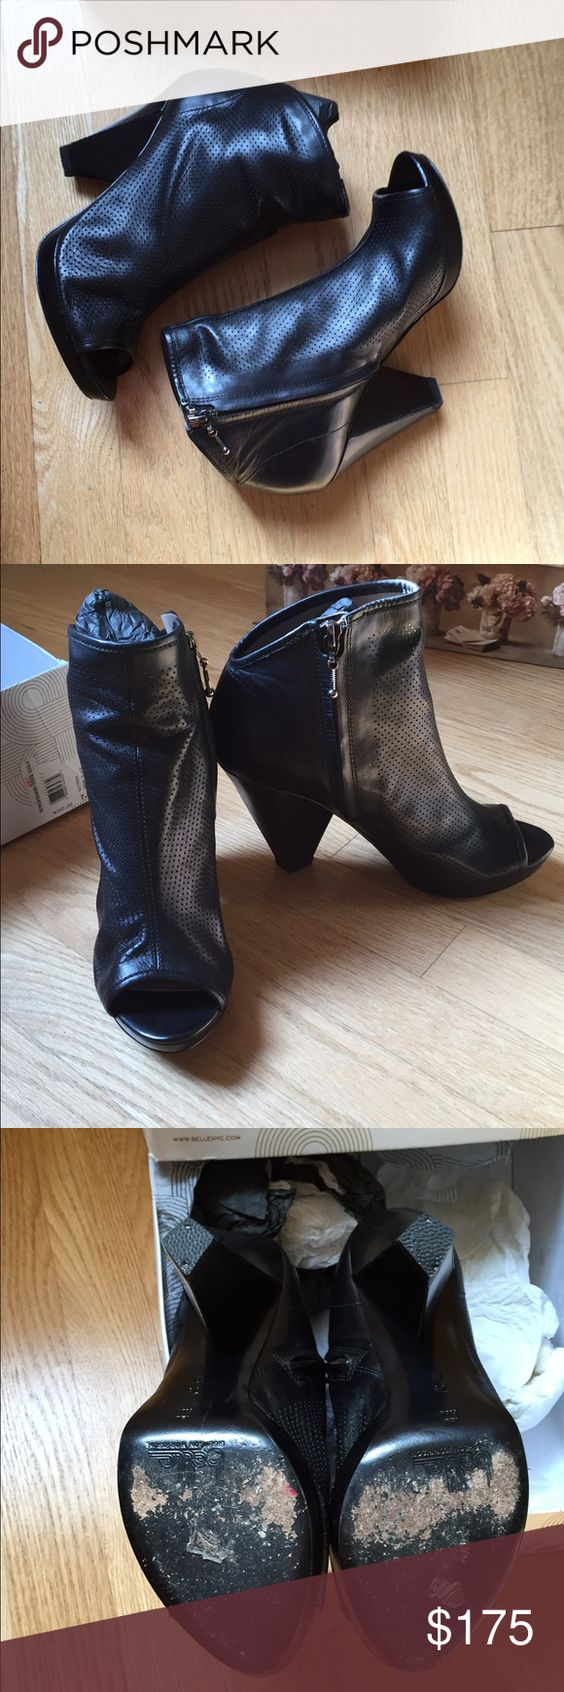 Belle by Sigerson Morrison Booties Shiny black leather peep-toe boogie. Previously worn but in good condition! Come with original box. Open to reasonable offers! Belle by Sigerson Morrison Shoes Ankle Boots & Booties